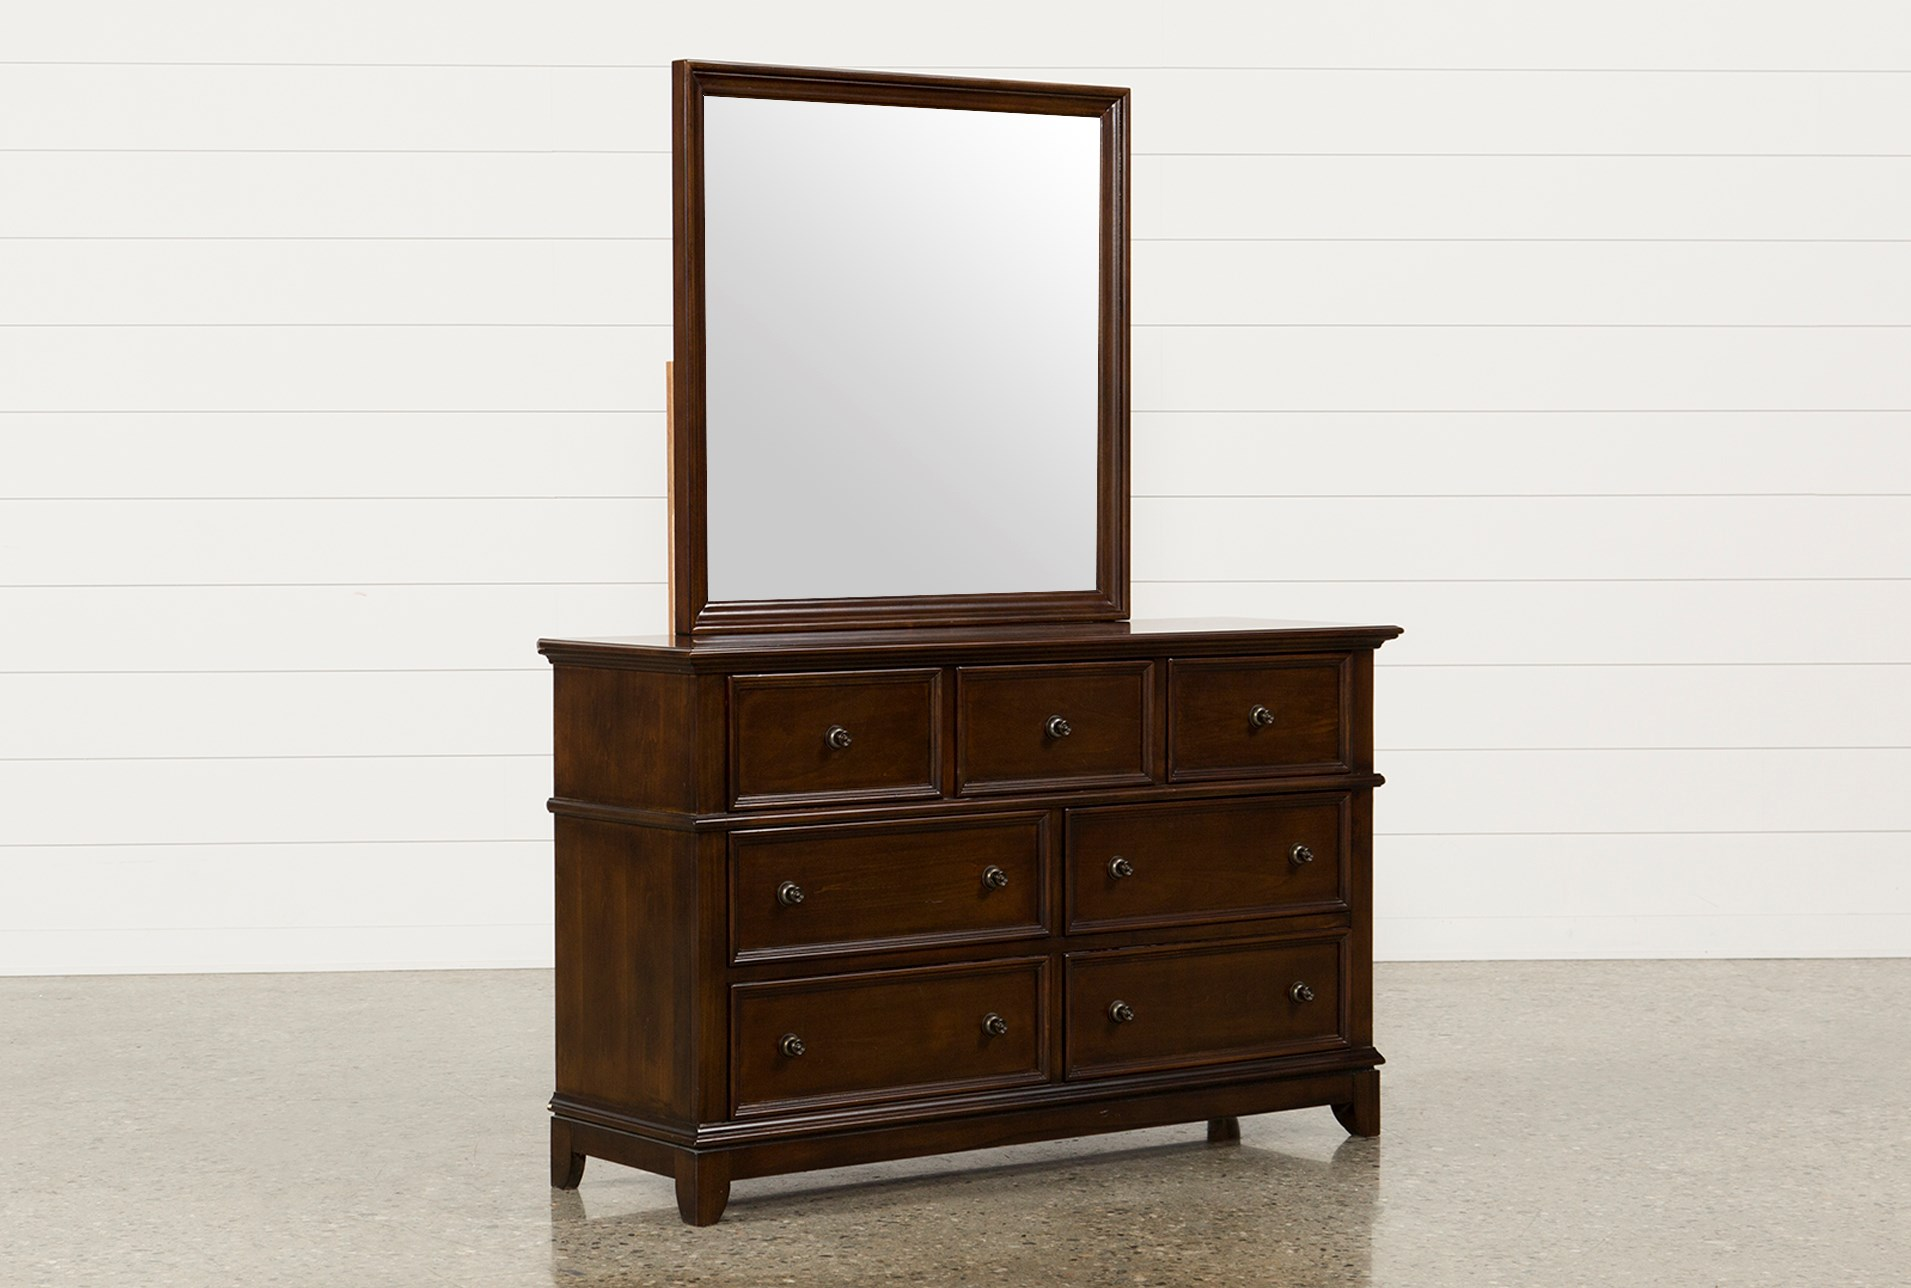 Dalton Dresser Mirror Qty 1 Has Been Successfully Added To Your Cart